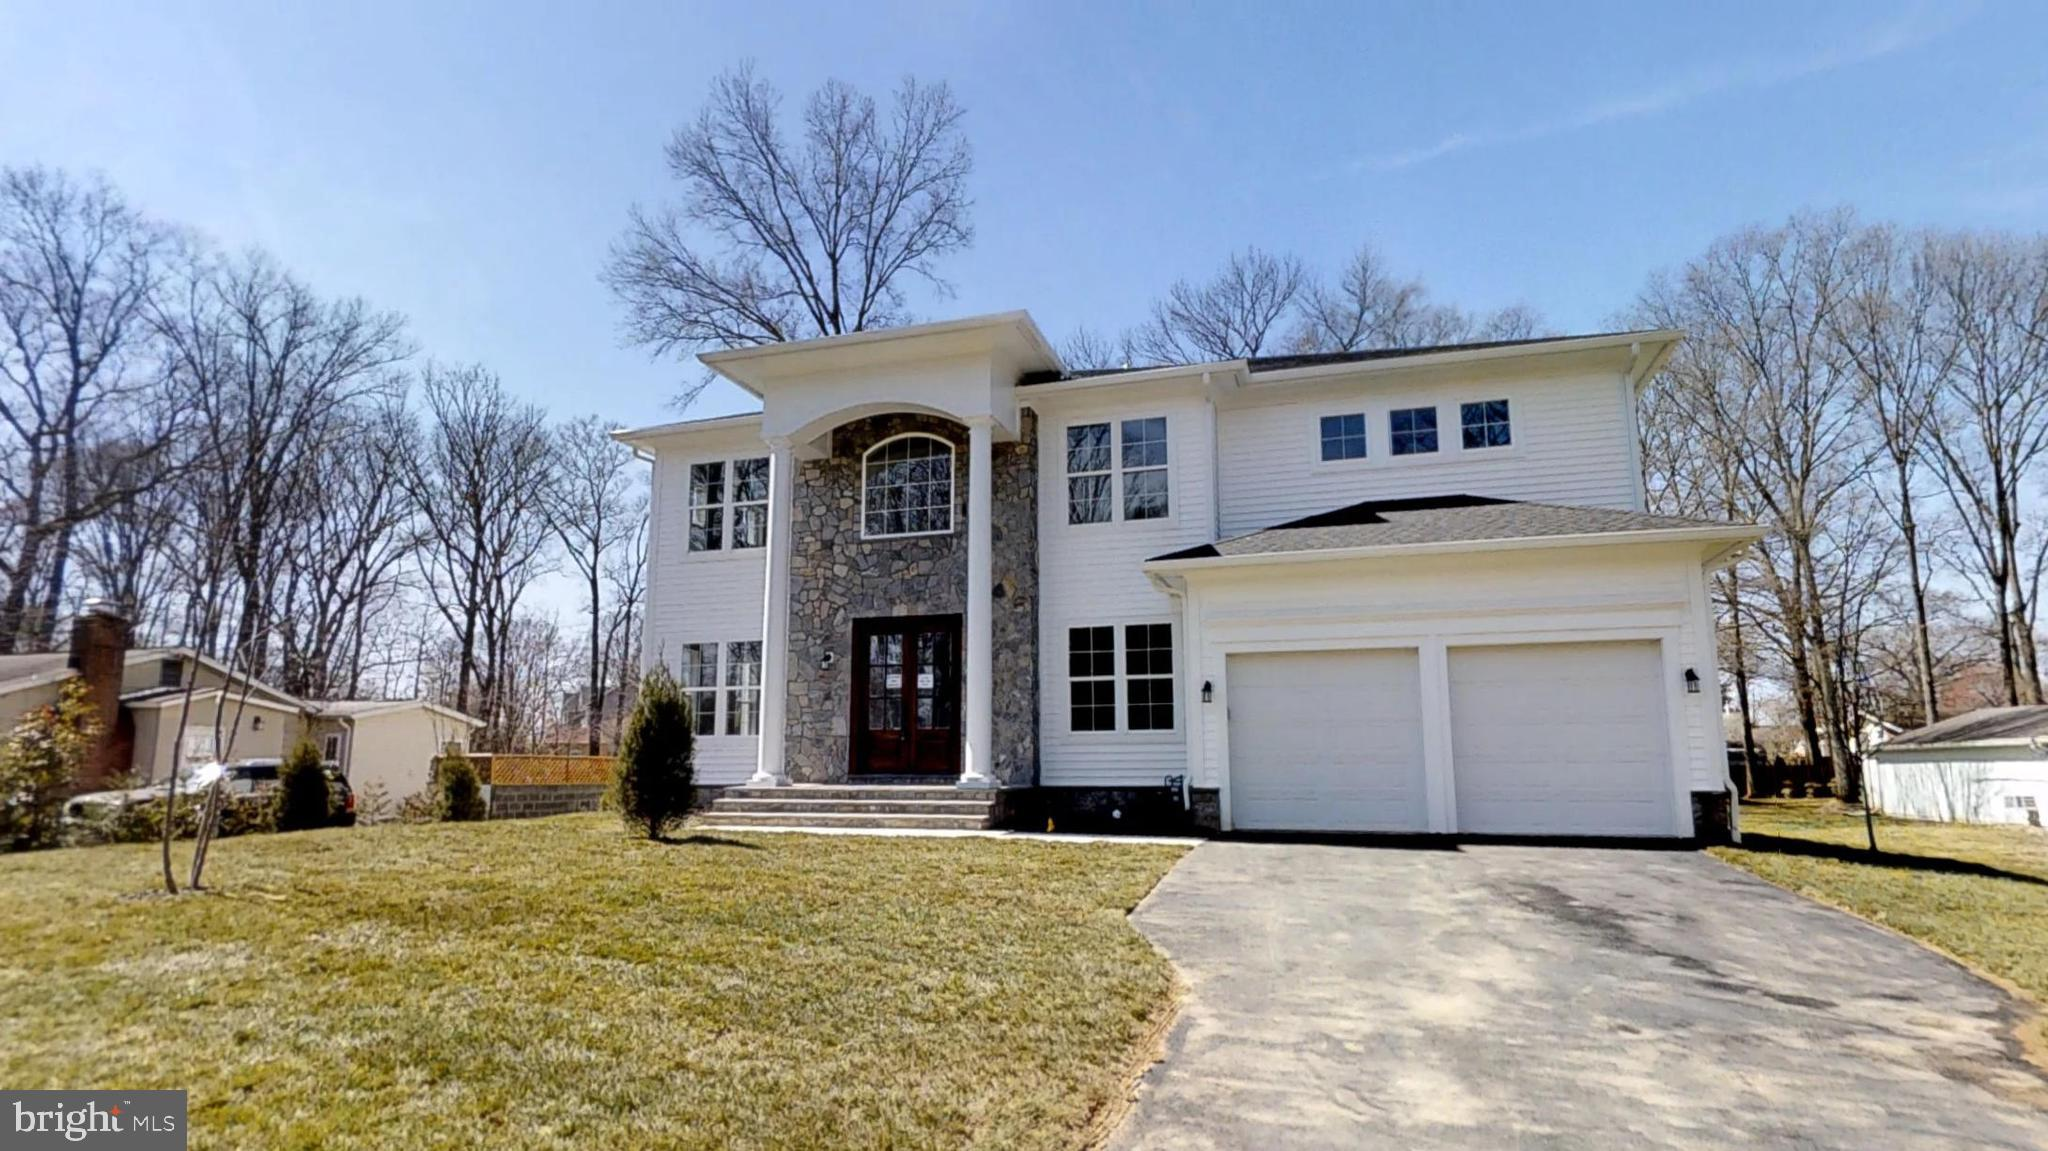 **$100k PRICE IMPROVEMENT**Spectacular NEW Construction on Gorgeous Private 1/2 acre lot in the heart of Alexandria with expected delivery Early Spring 2019! This Spectacular estate will feature 6BR, 6.55BA's and over 6700 sq ft of finished space! Main level In-Law suite w/FB! Upper level boast 3 additional BR's and Grand Master Suite w/ Spa Bath!